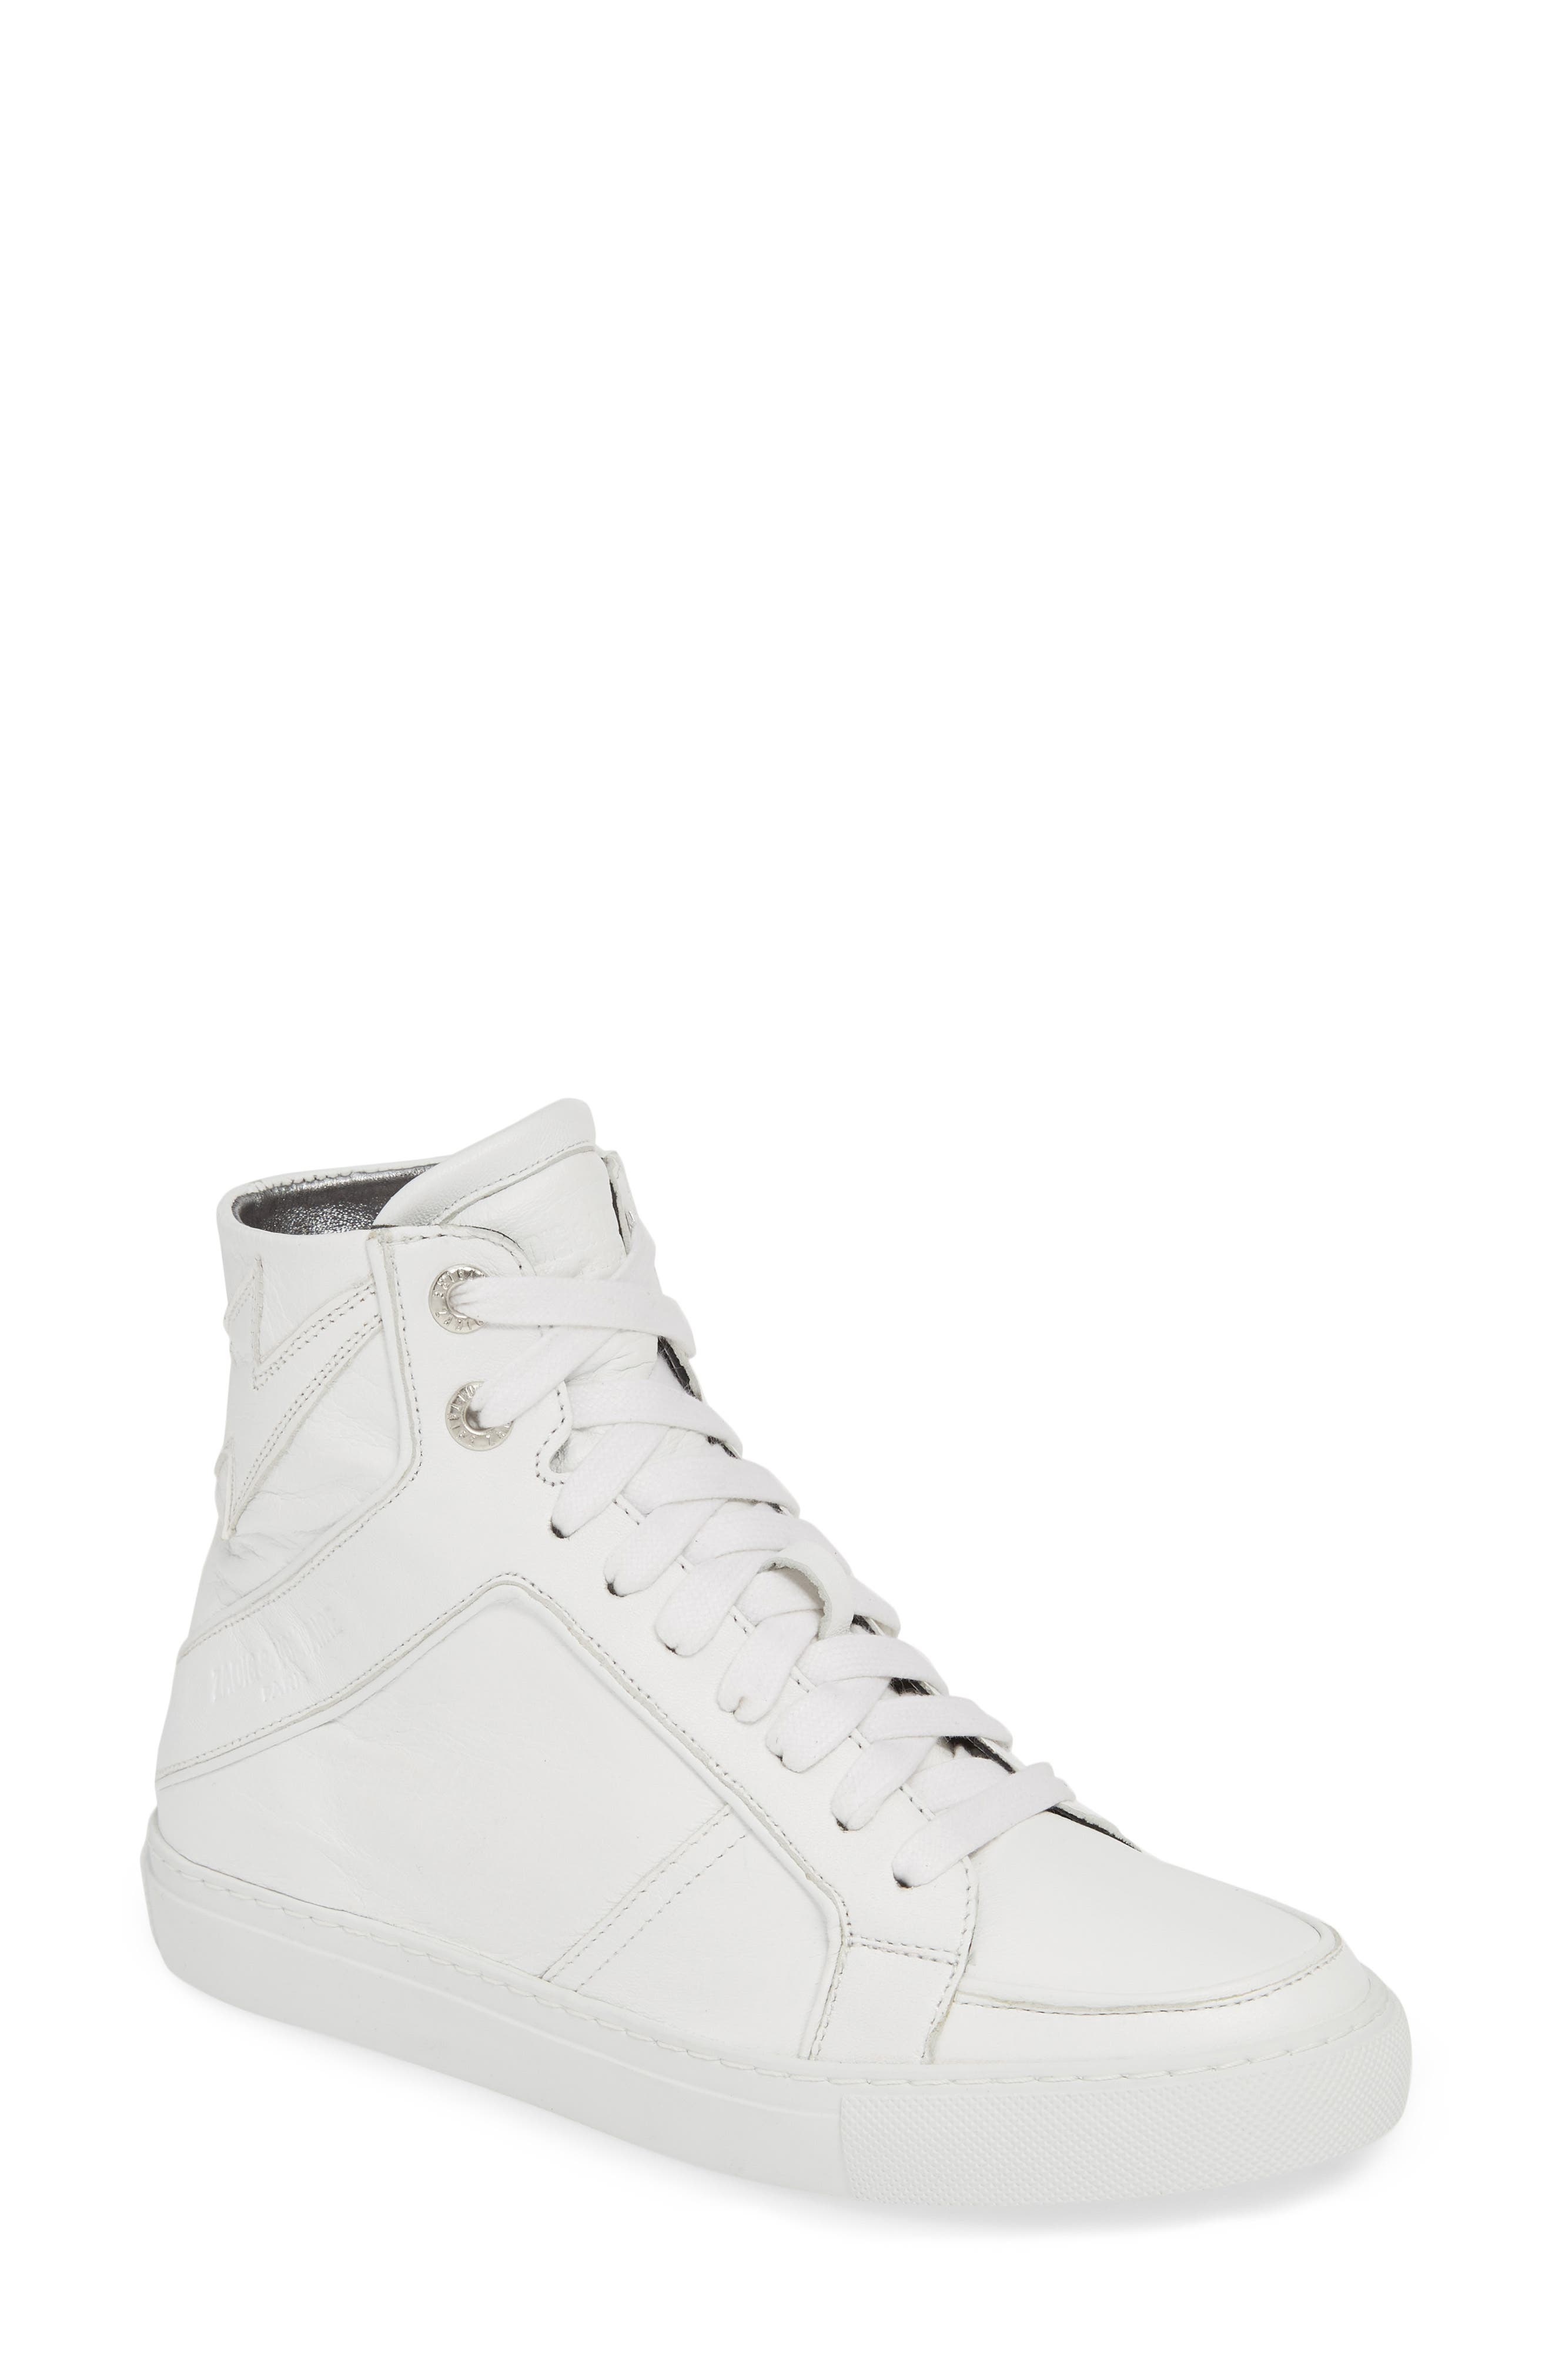 ZADIG & VOLTAIRE, Flash High Top Sneaker, Main thumbnail 1, color, BLANC